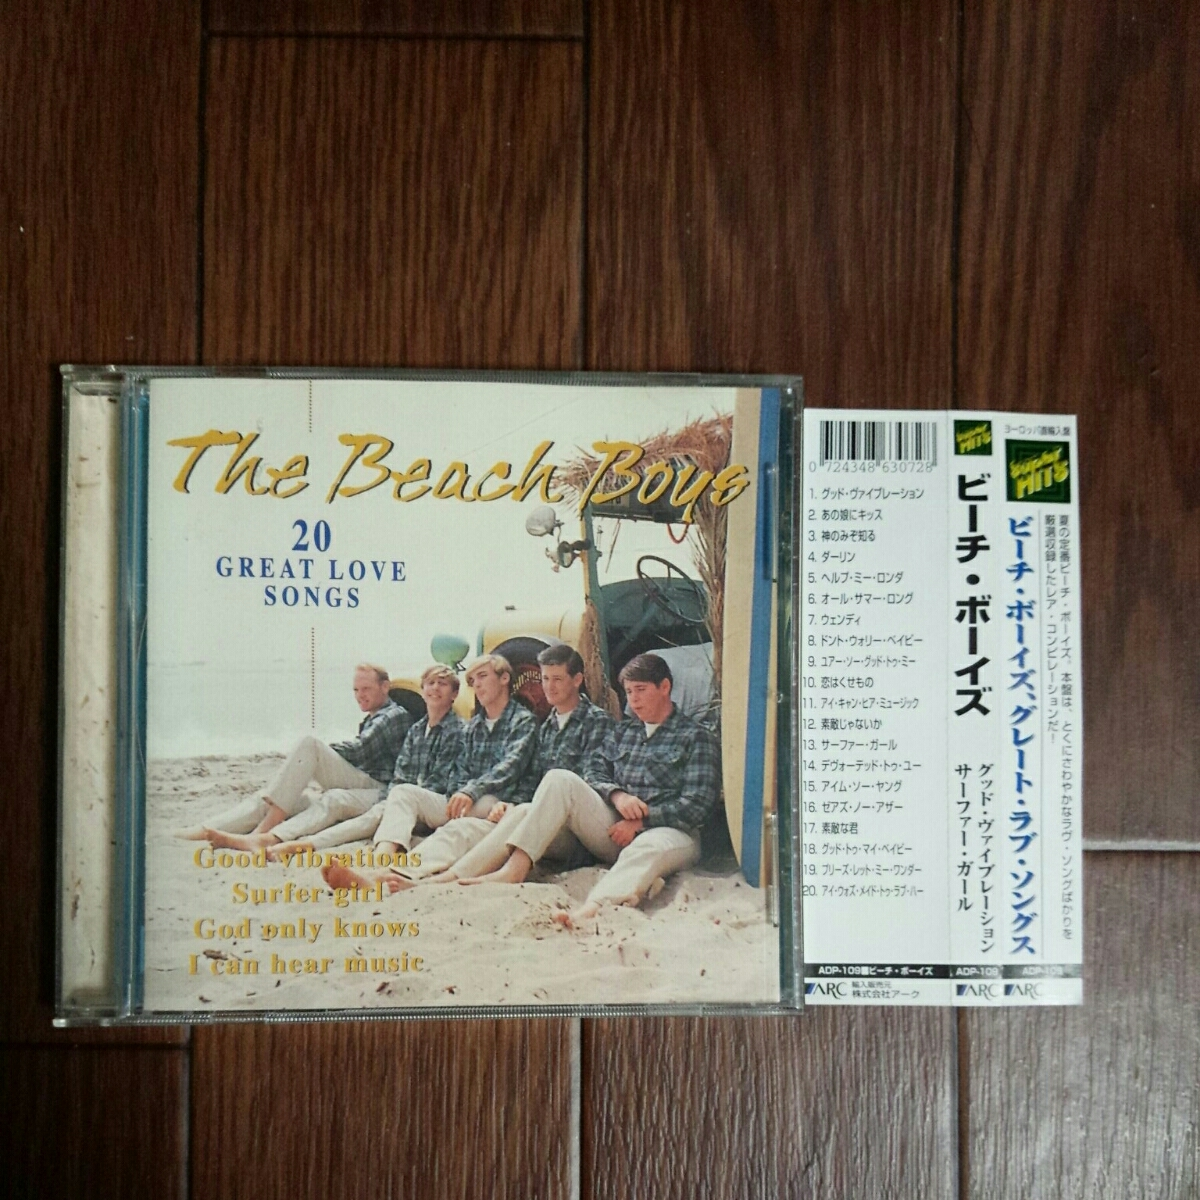 The Beach Boys ビーチ・ボーイズ 20 GREAT LOVE SONGS グレート・ラブ・ソングス 輸入盤 アルバムCD 再生確認済み